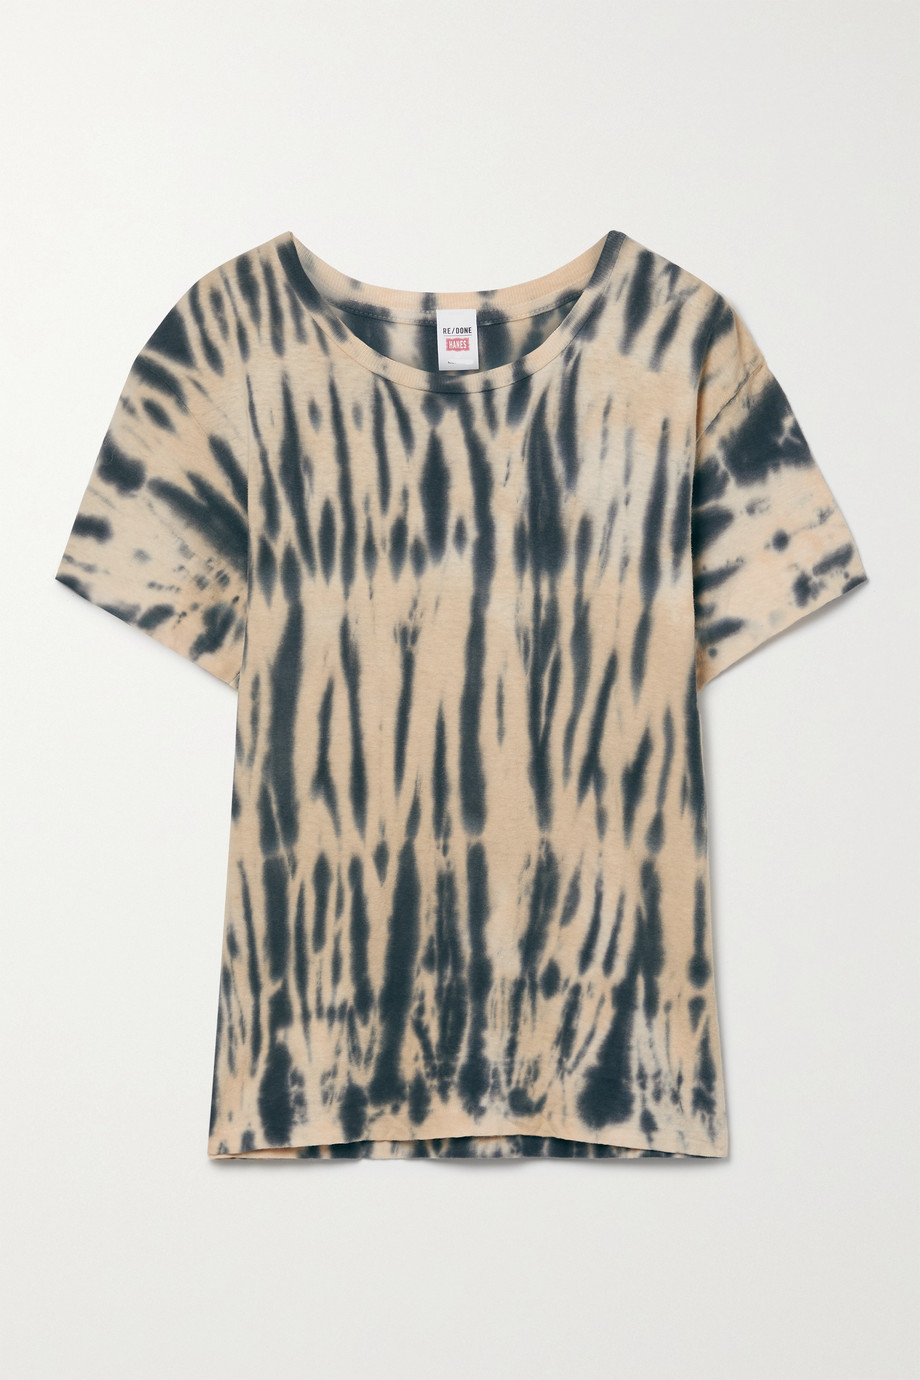 RE/DONE + NET SUSTAIN + Hanes 70s tie-dyed recycled cotton-jersey T-shirt